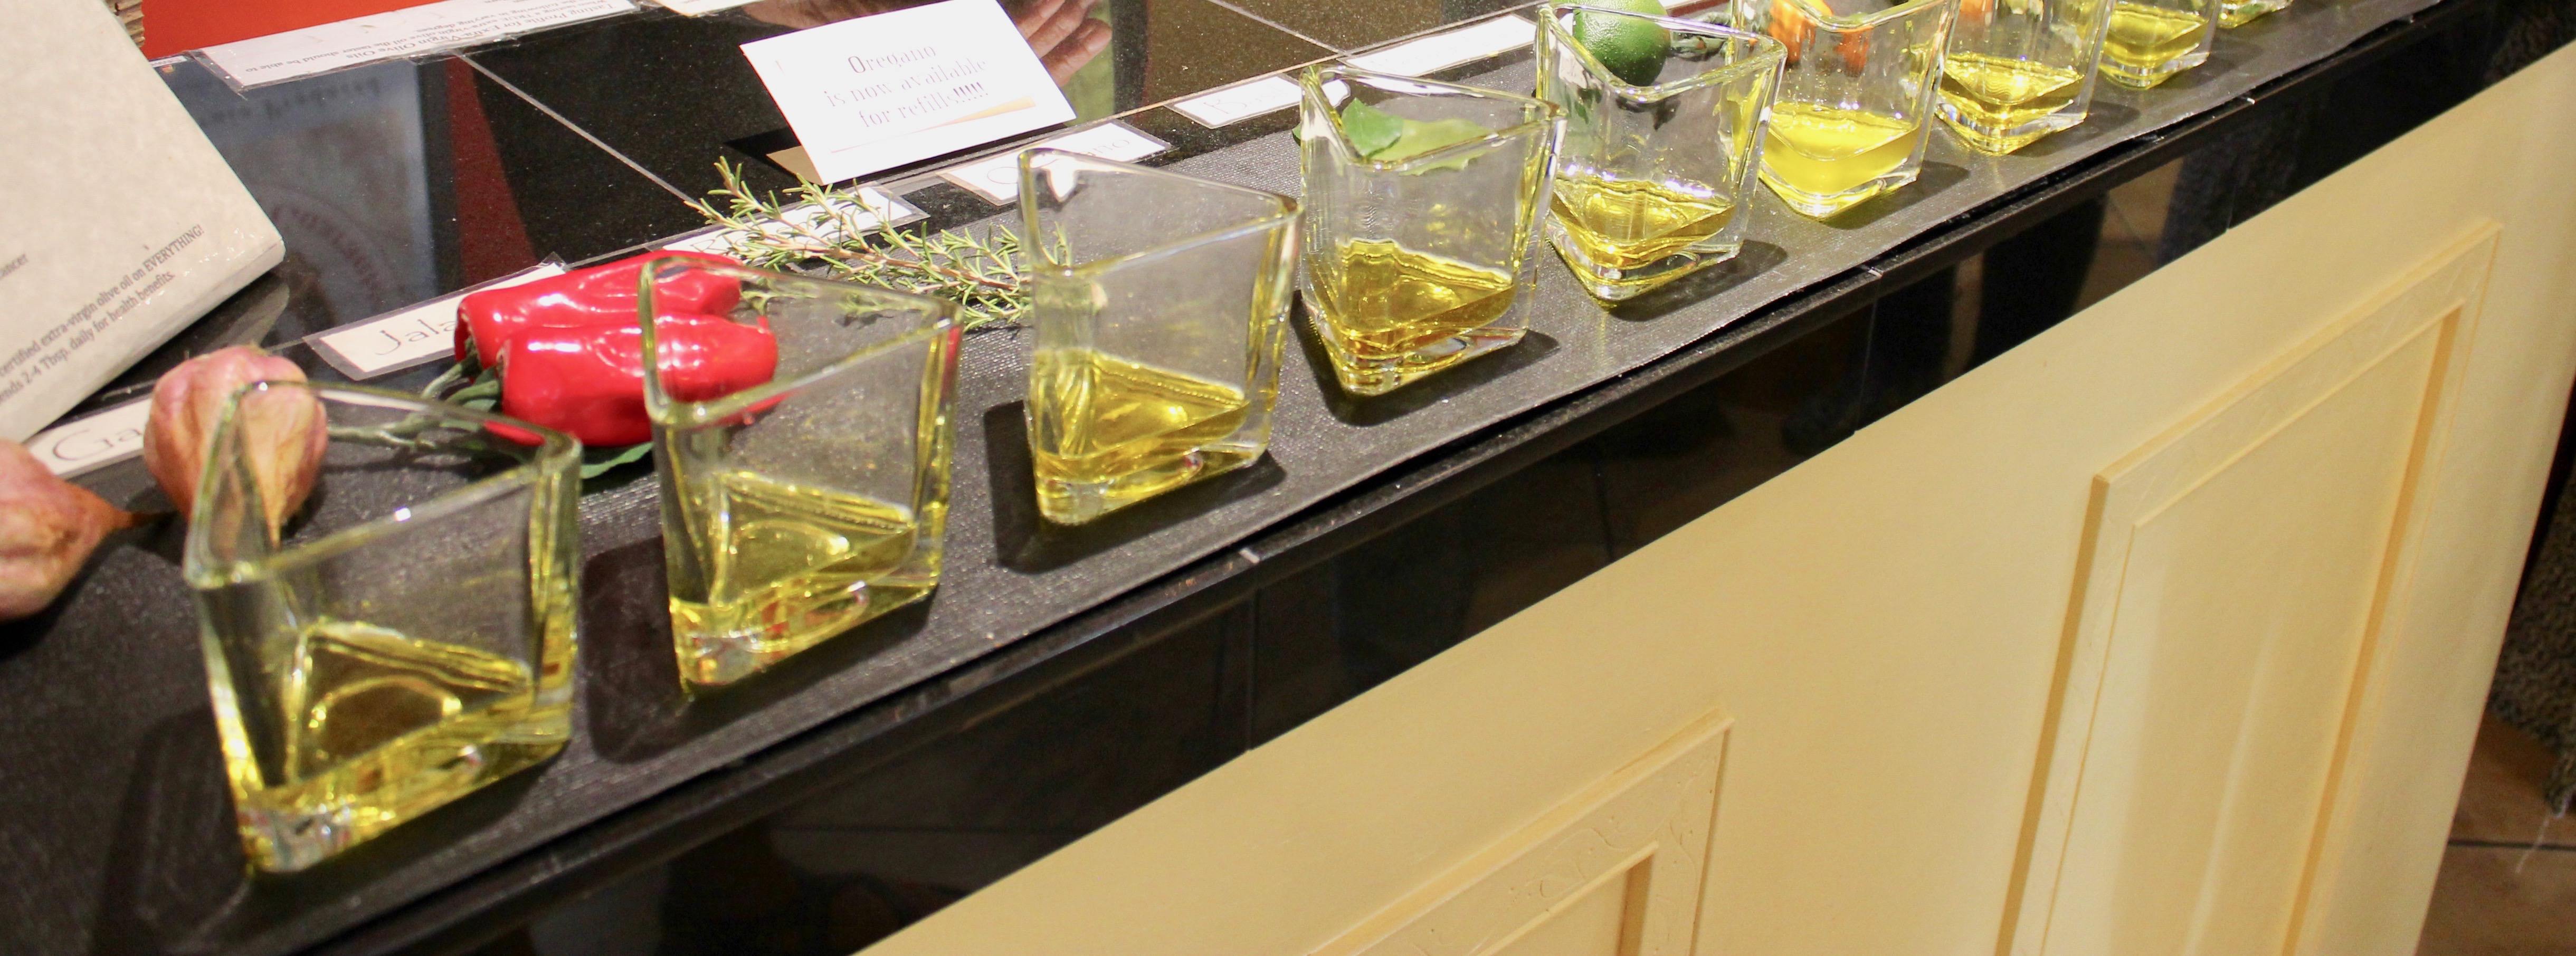 Triangular glasses with olive oil, herbs and spices, on a counter, ready for tastings.